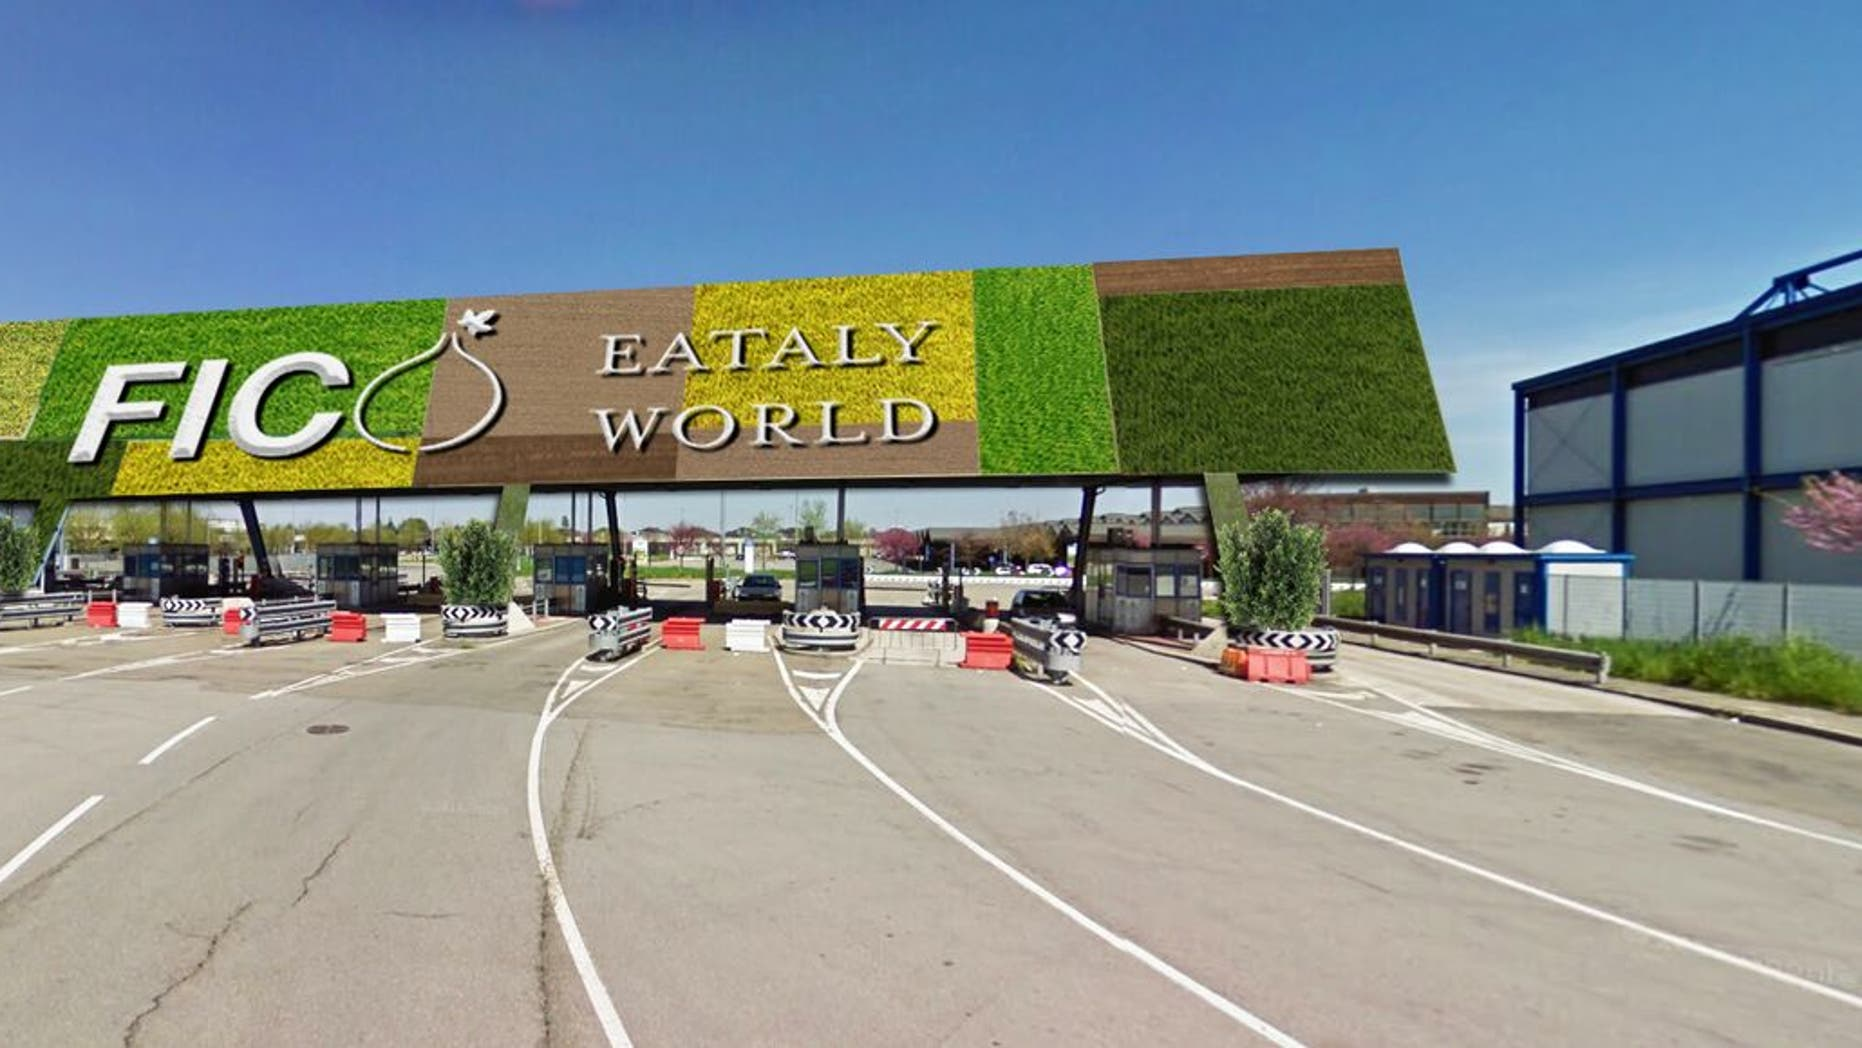 Eataly is launching its own theme park around Italian food.